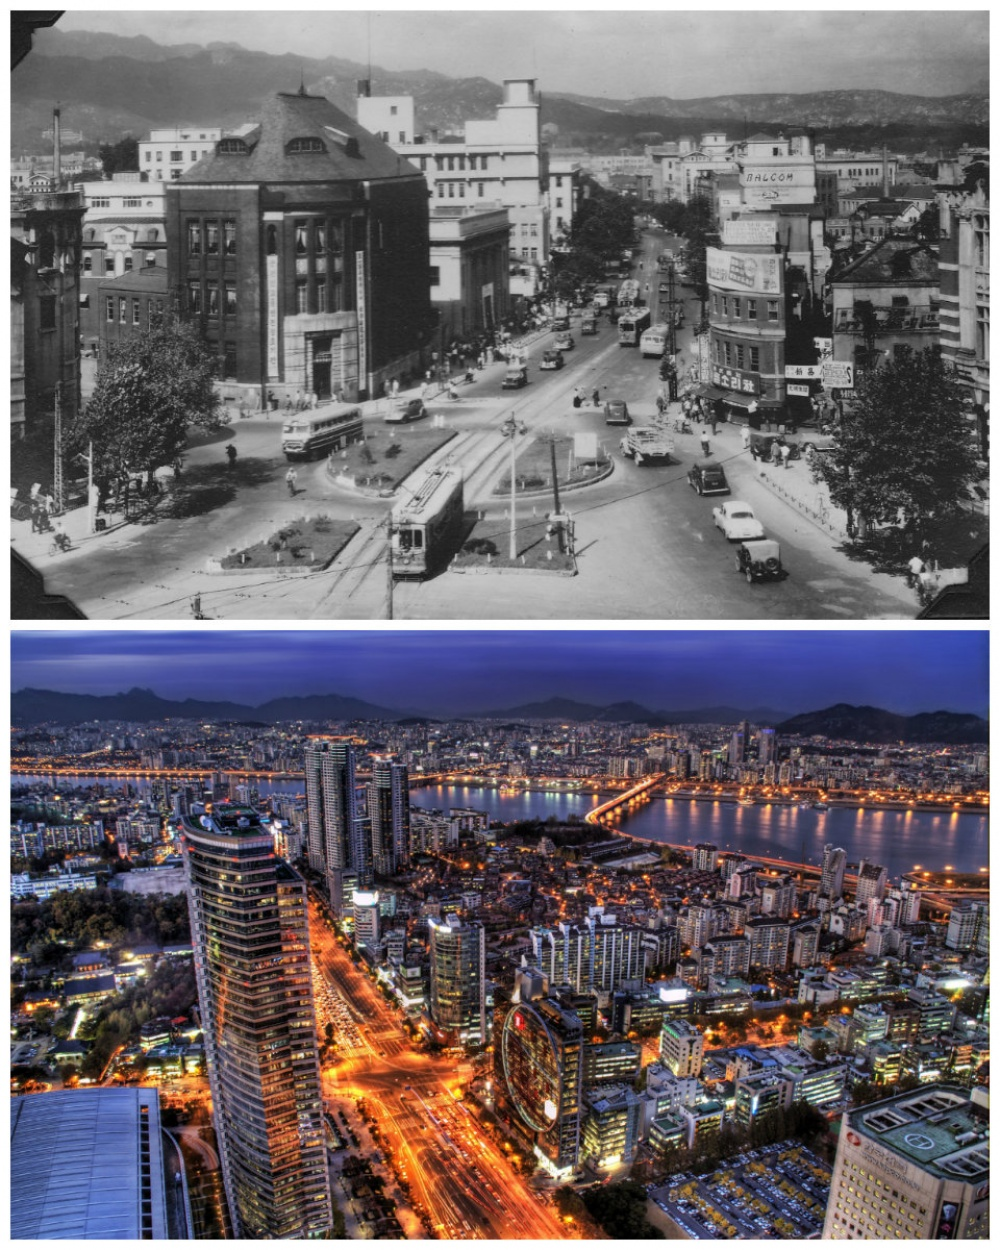 Seoul, South Korea: 1950 vs. the present day